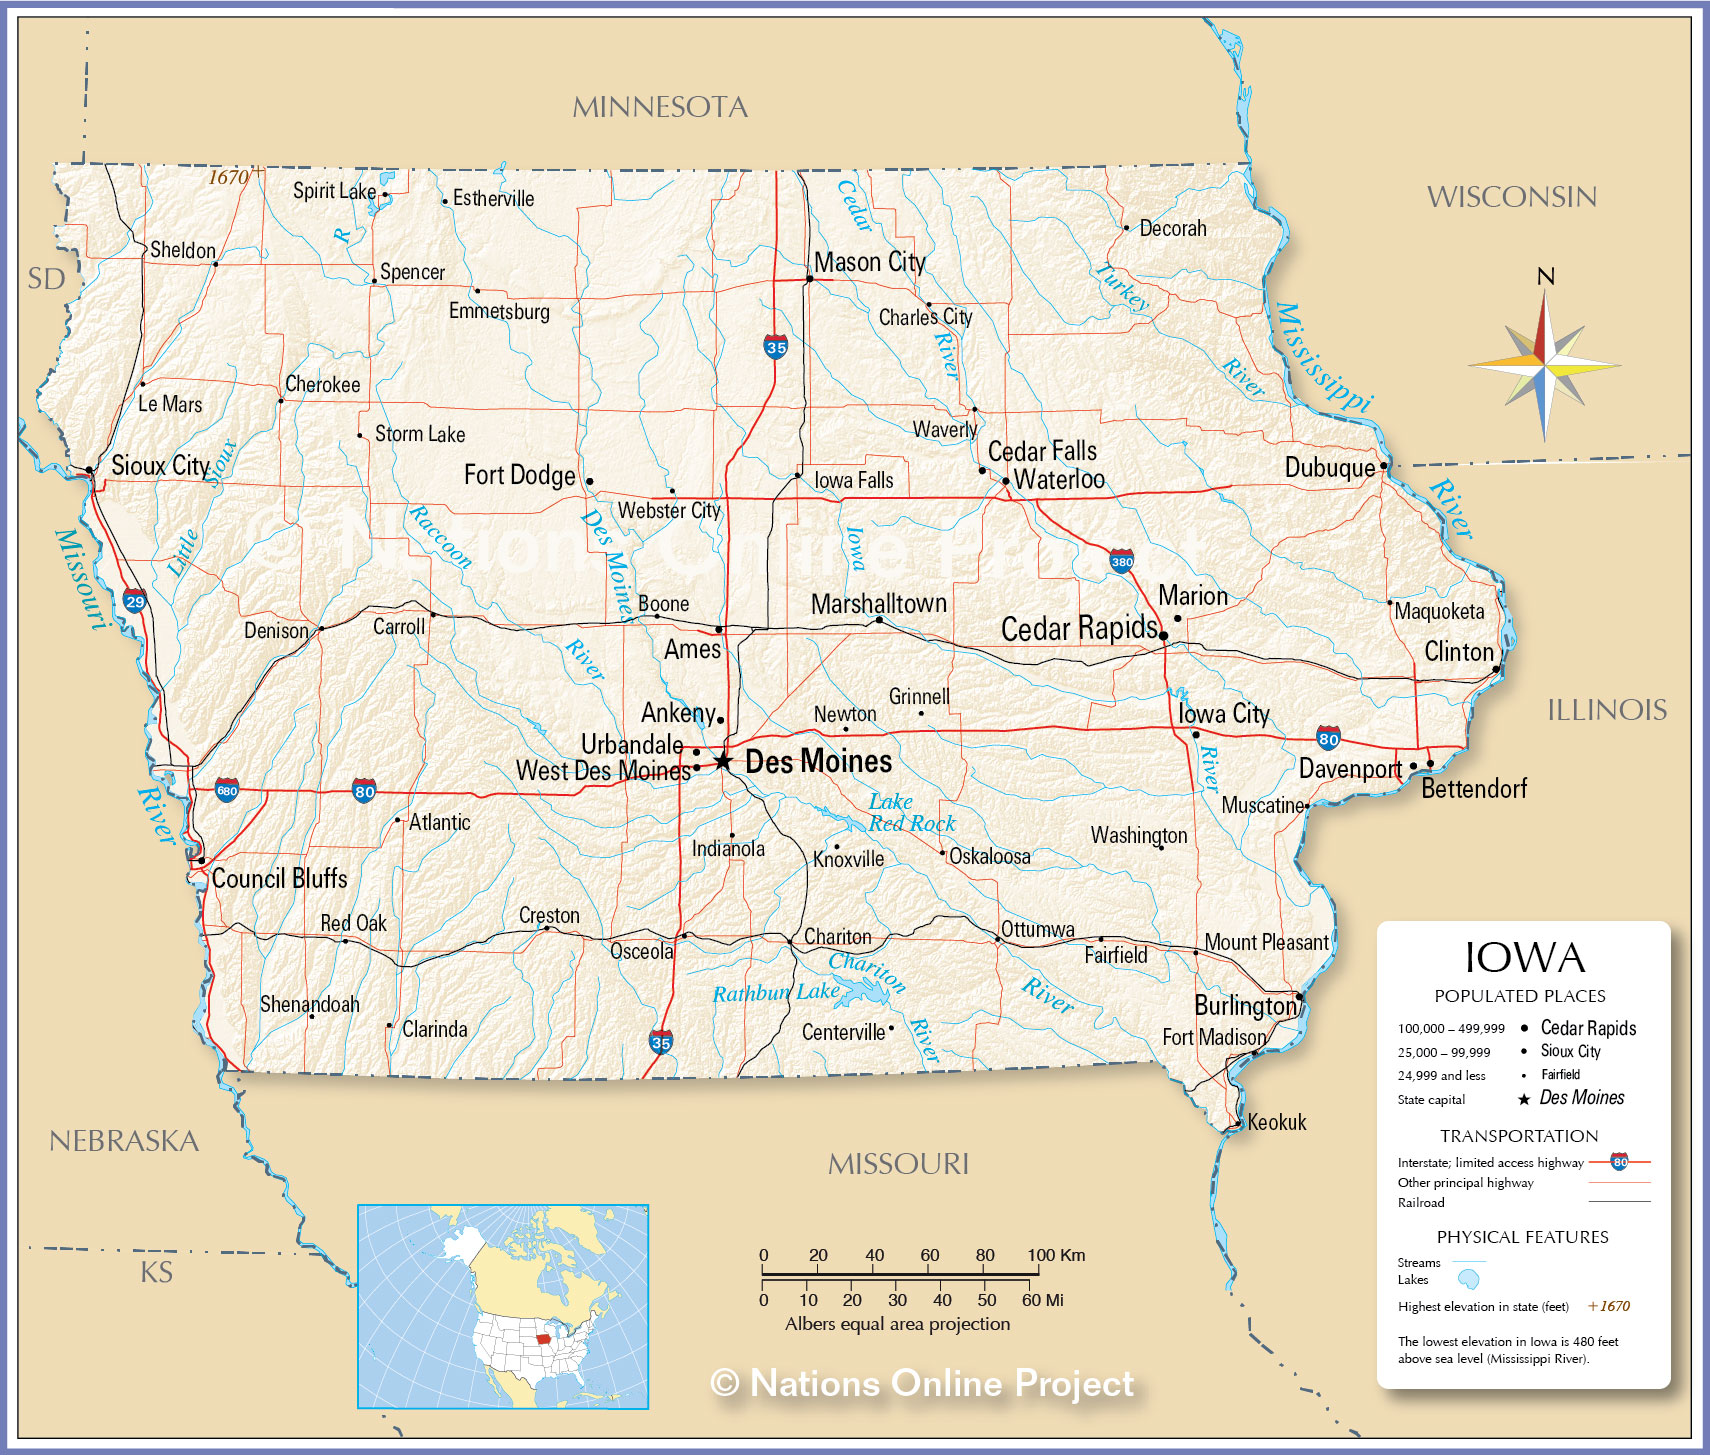 Reference Map Of Iowa USA Nations Online Project - Iowa usa map